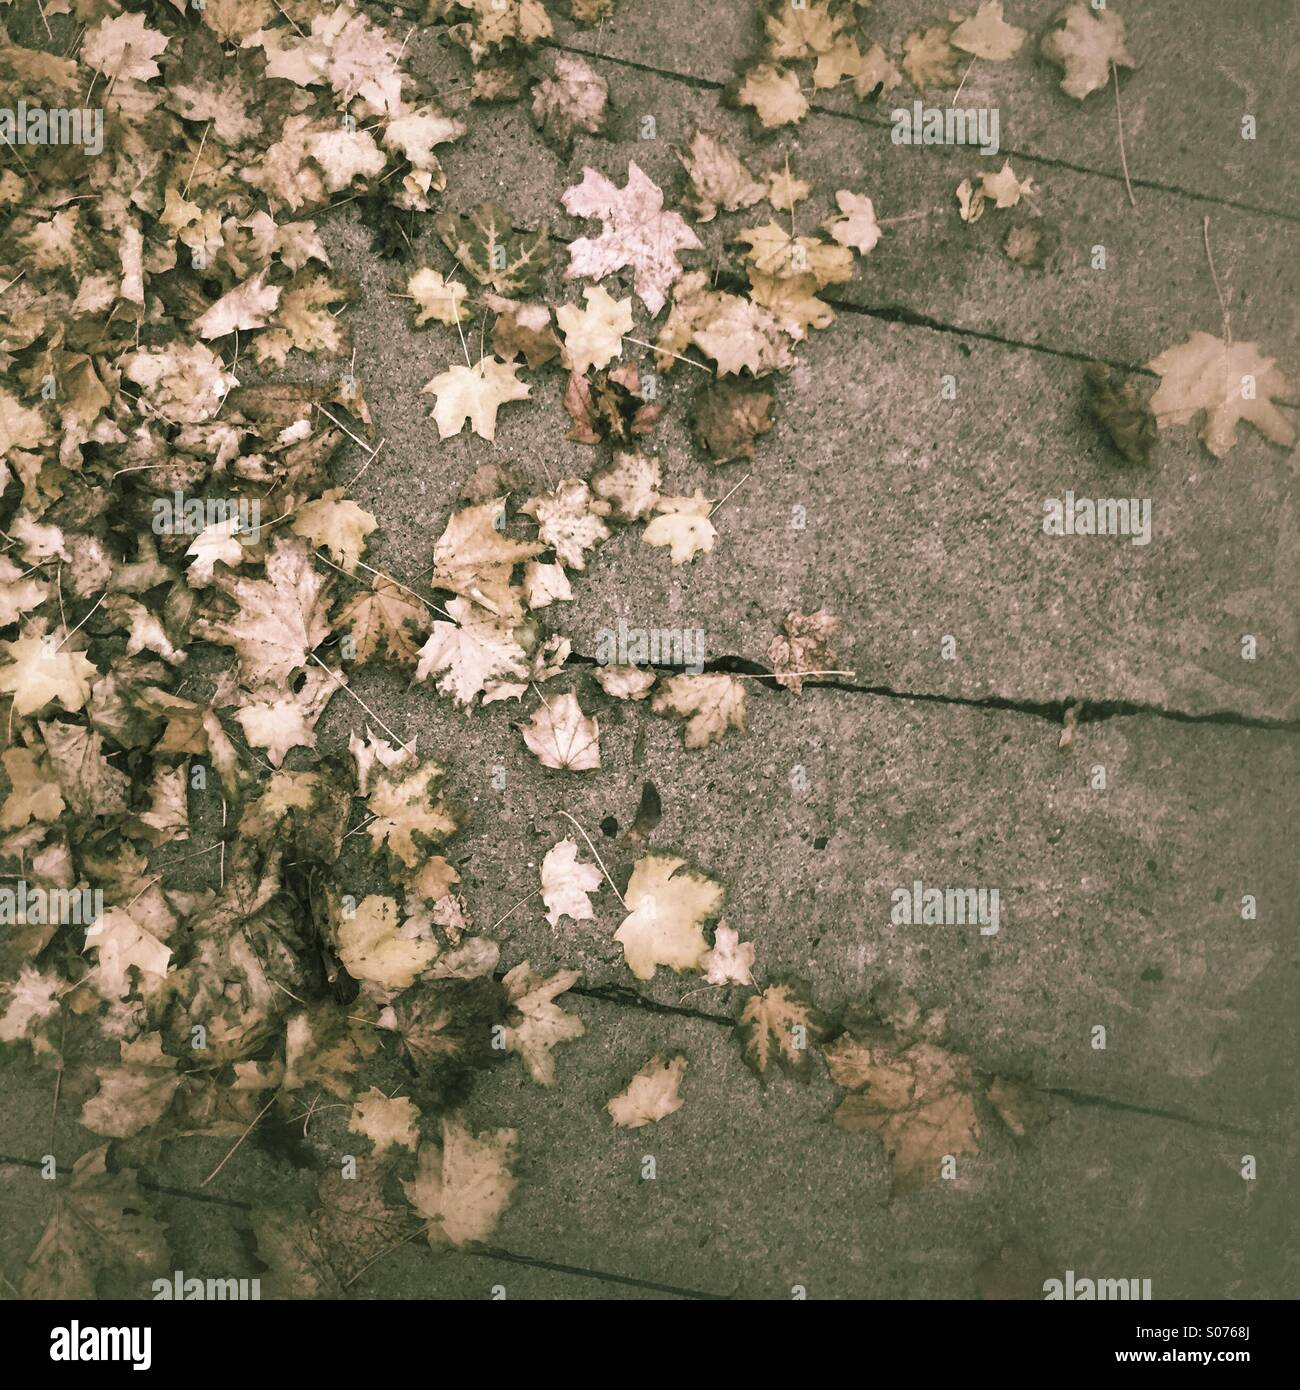 Tree leaves fall to the ground, Autumn - Stock Image